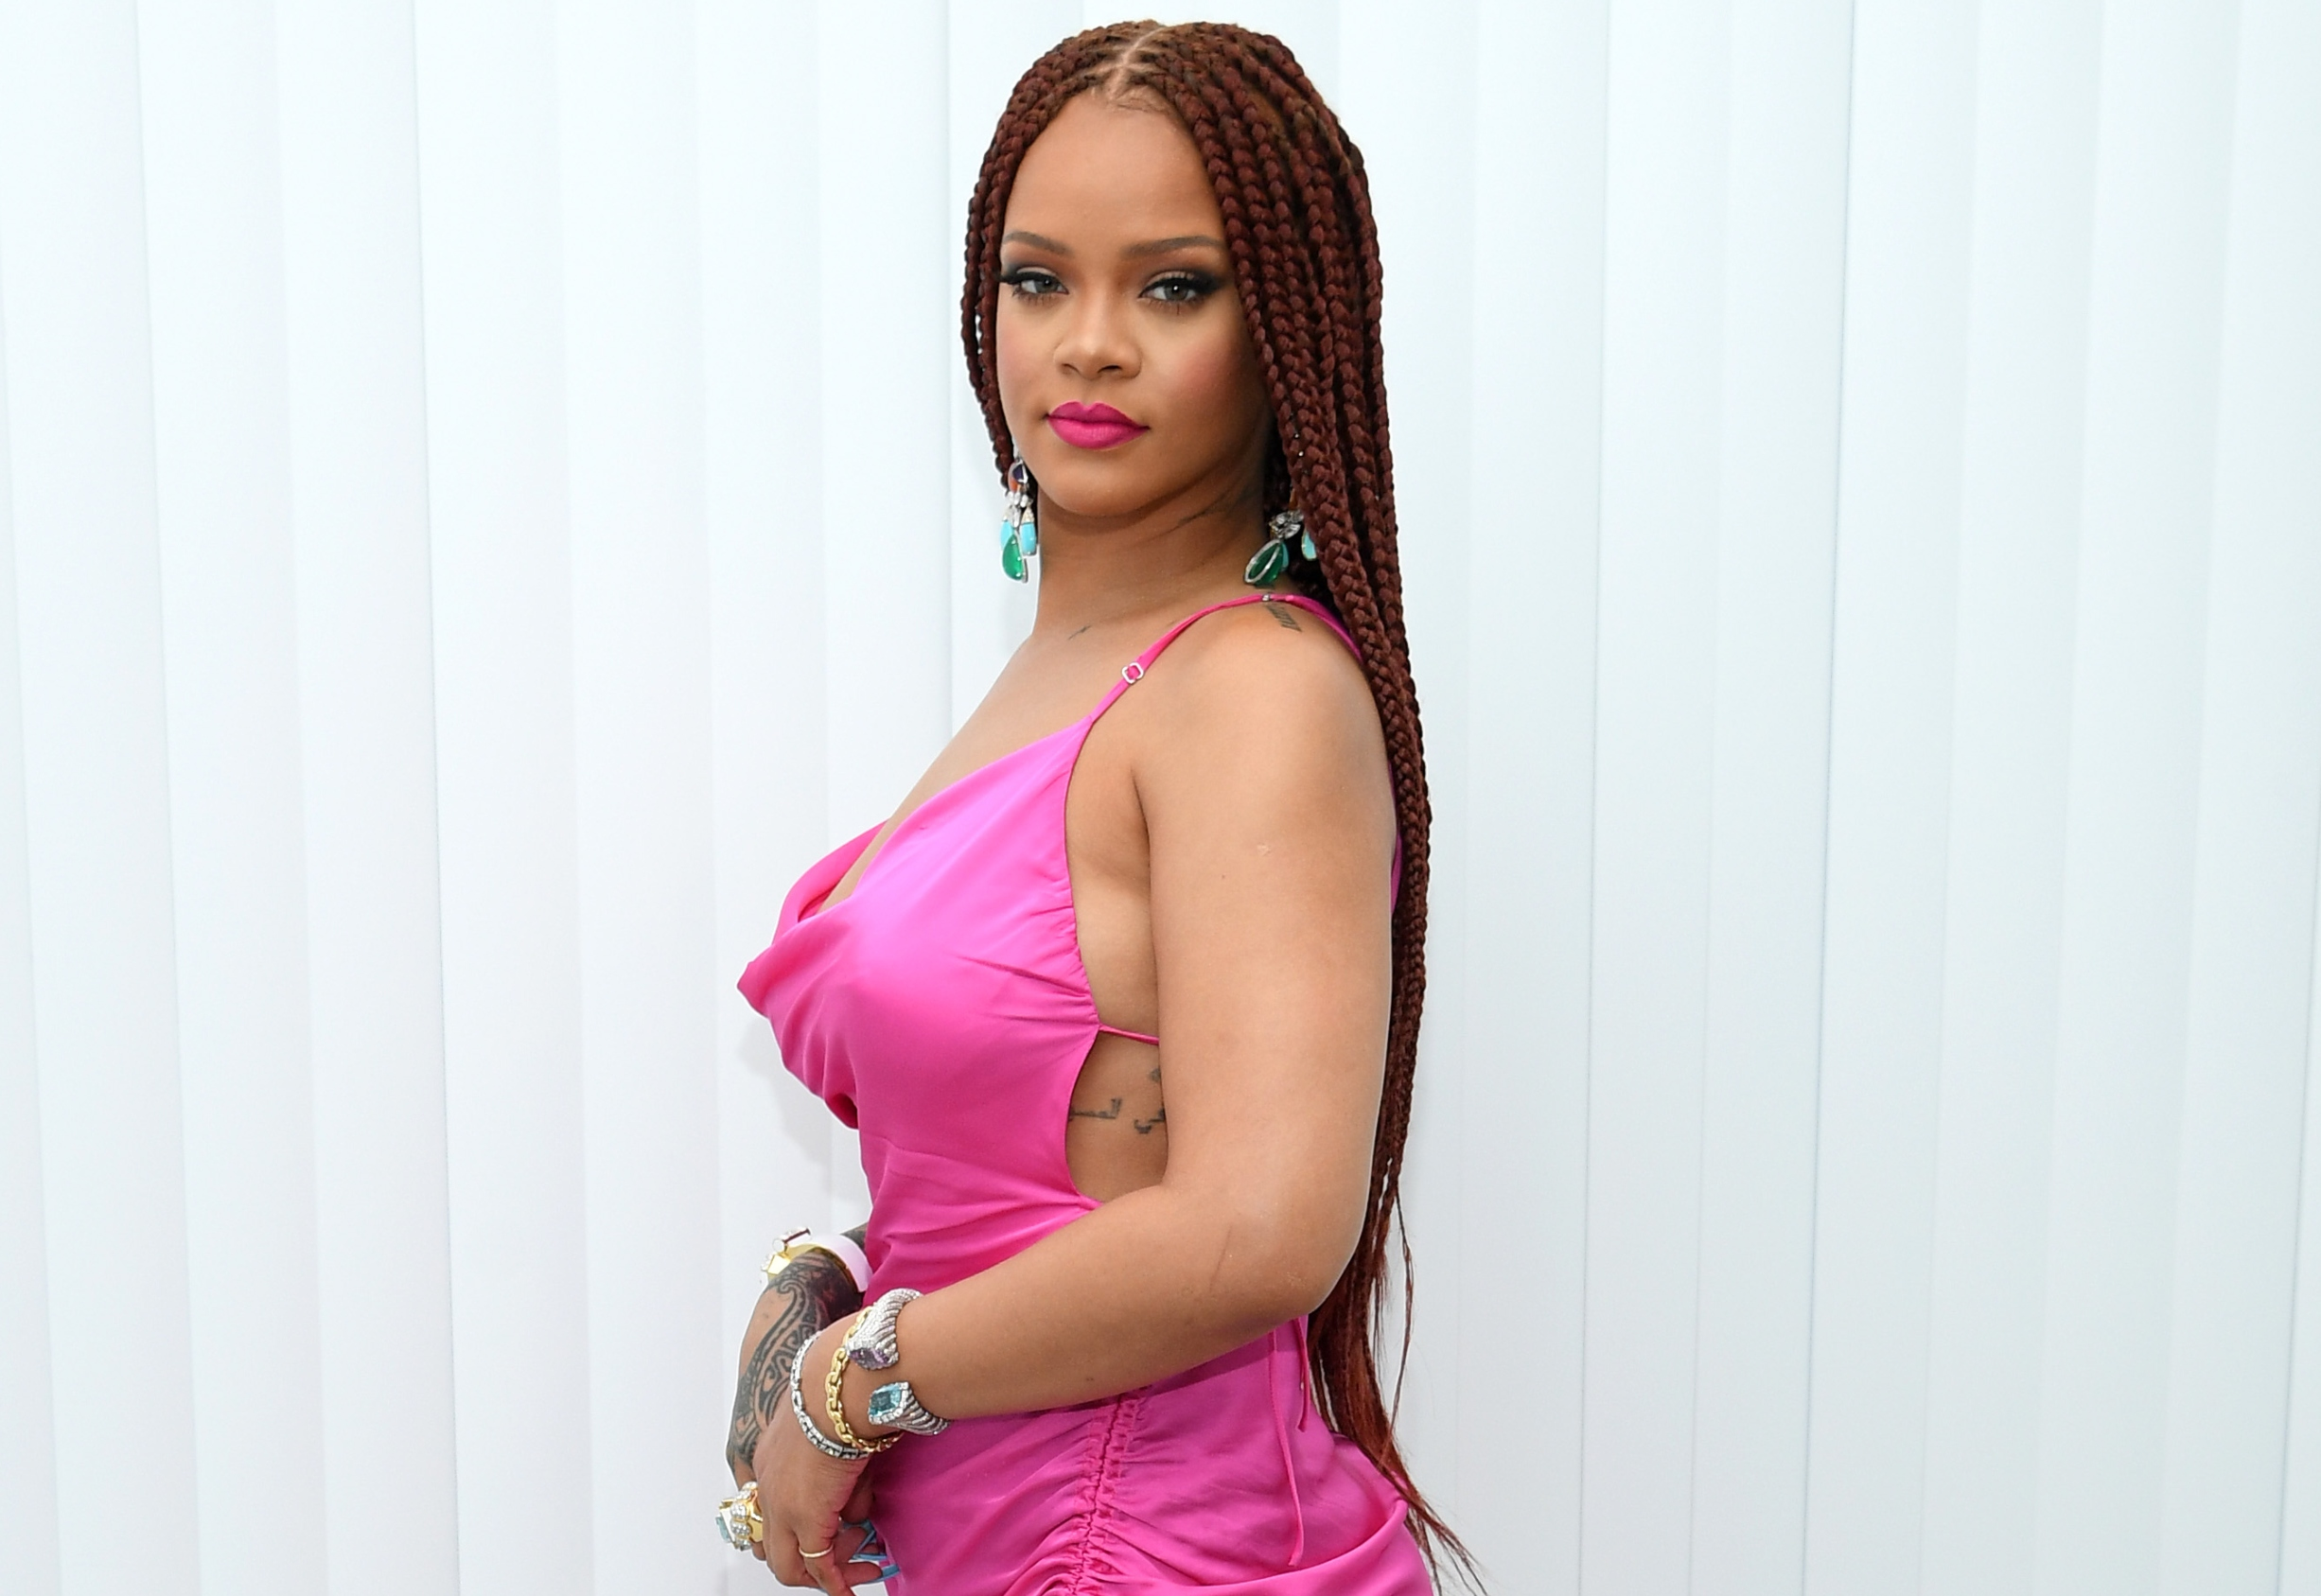 6 Tips on Success We Learned From Rihanna, the Ultimate Serial Entrepreneur